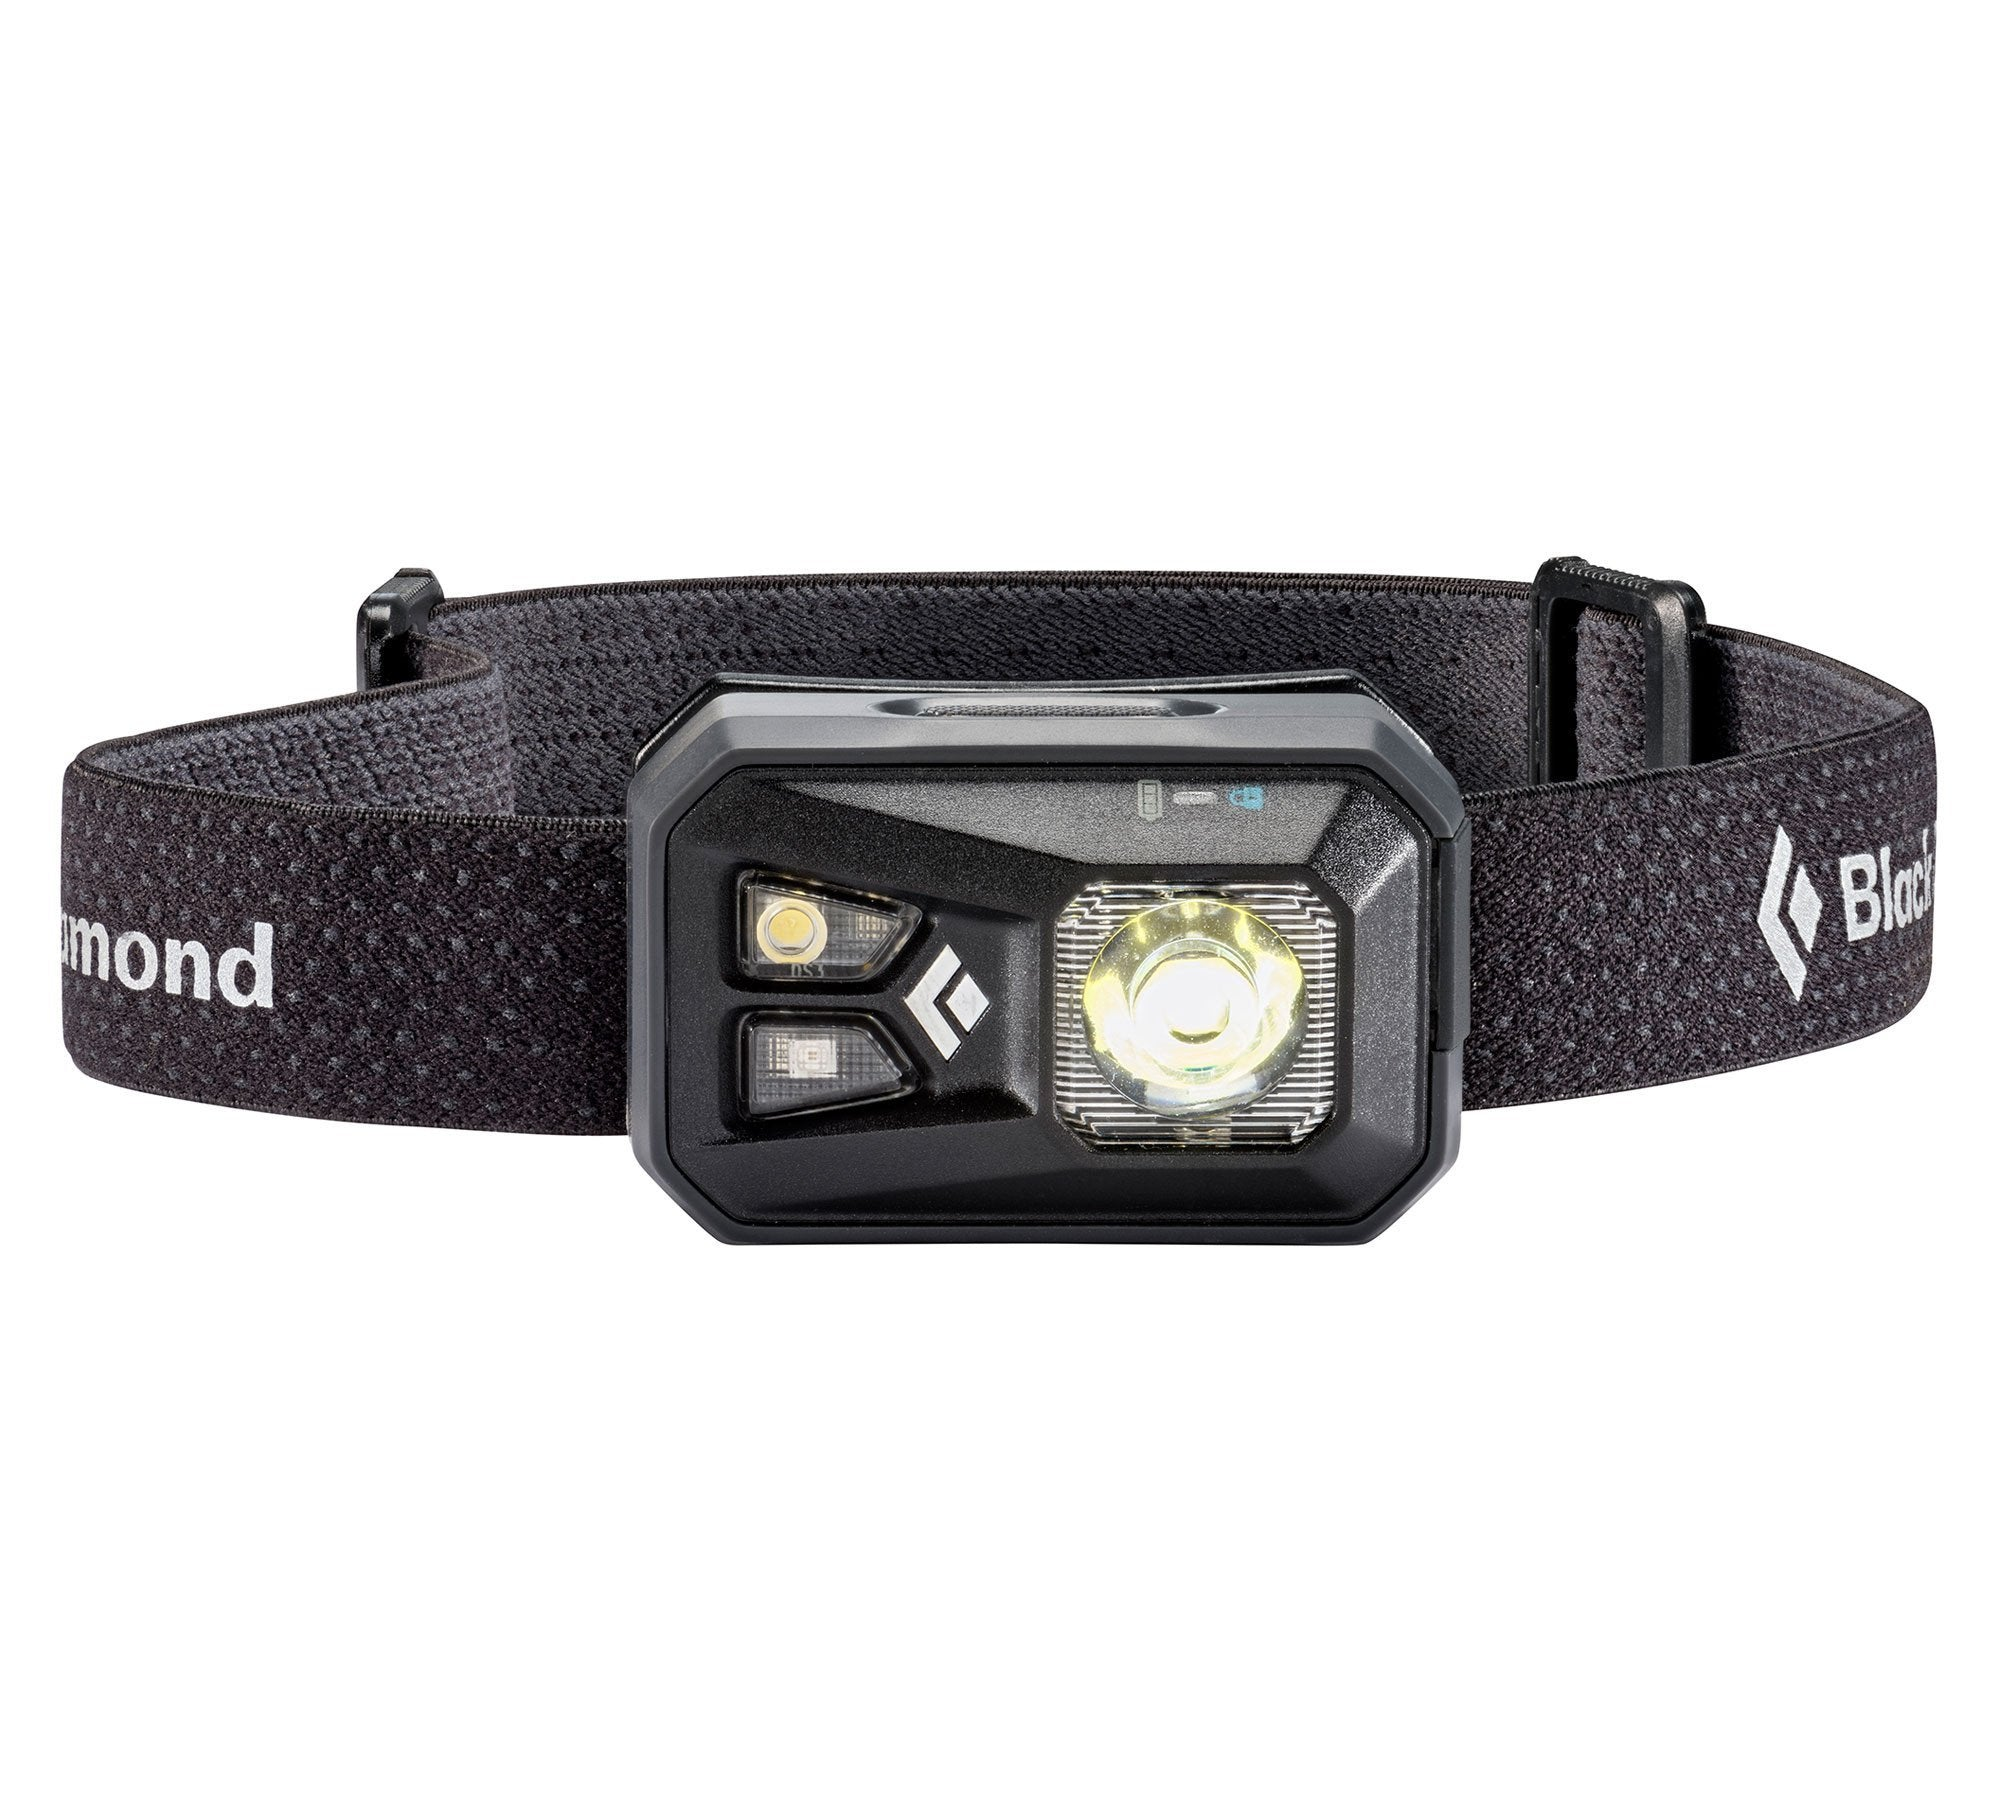 Black Diamond ReVolt head torch, in black colour